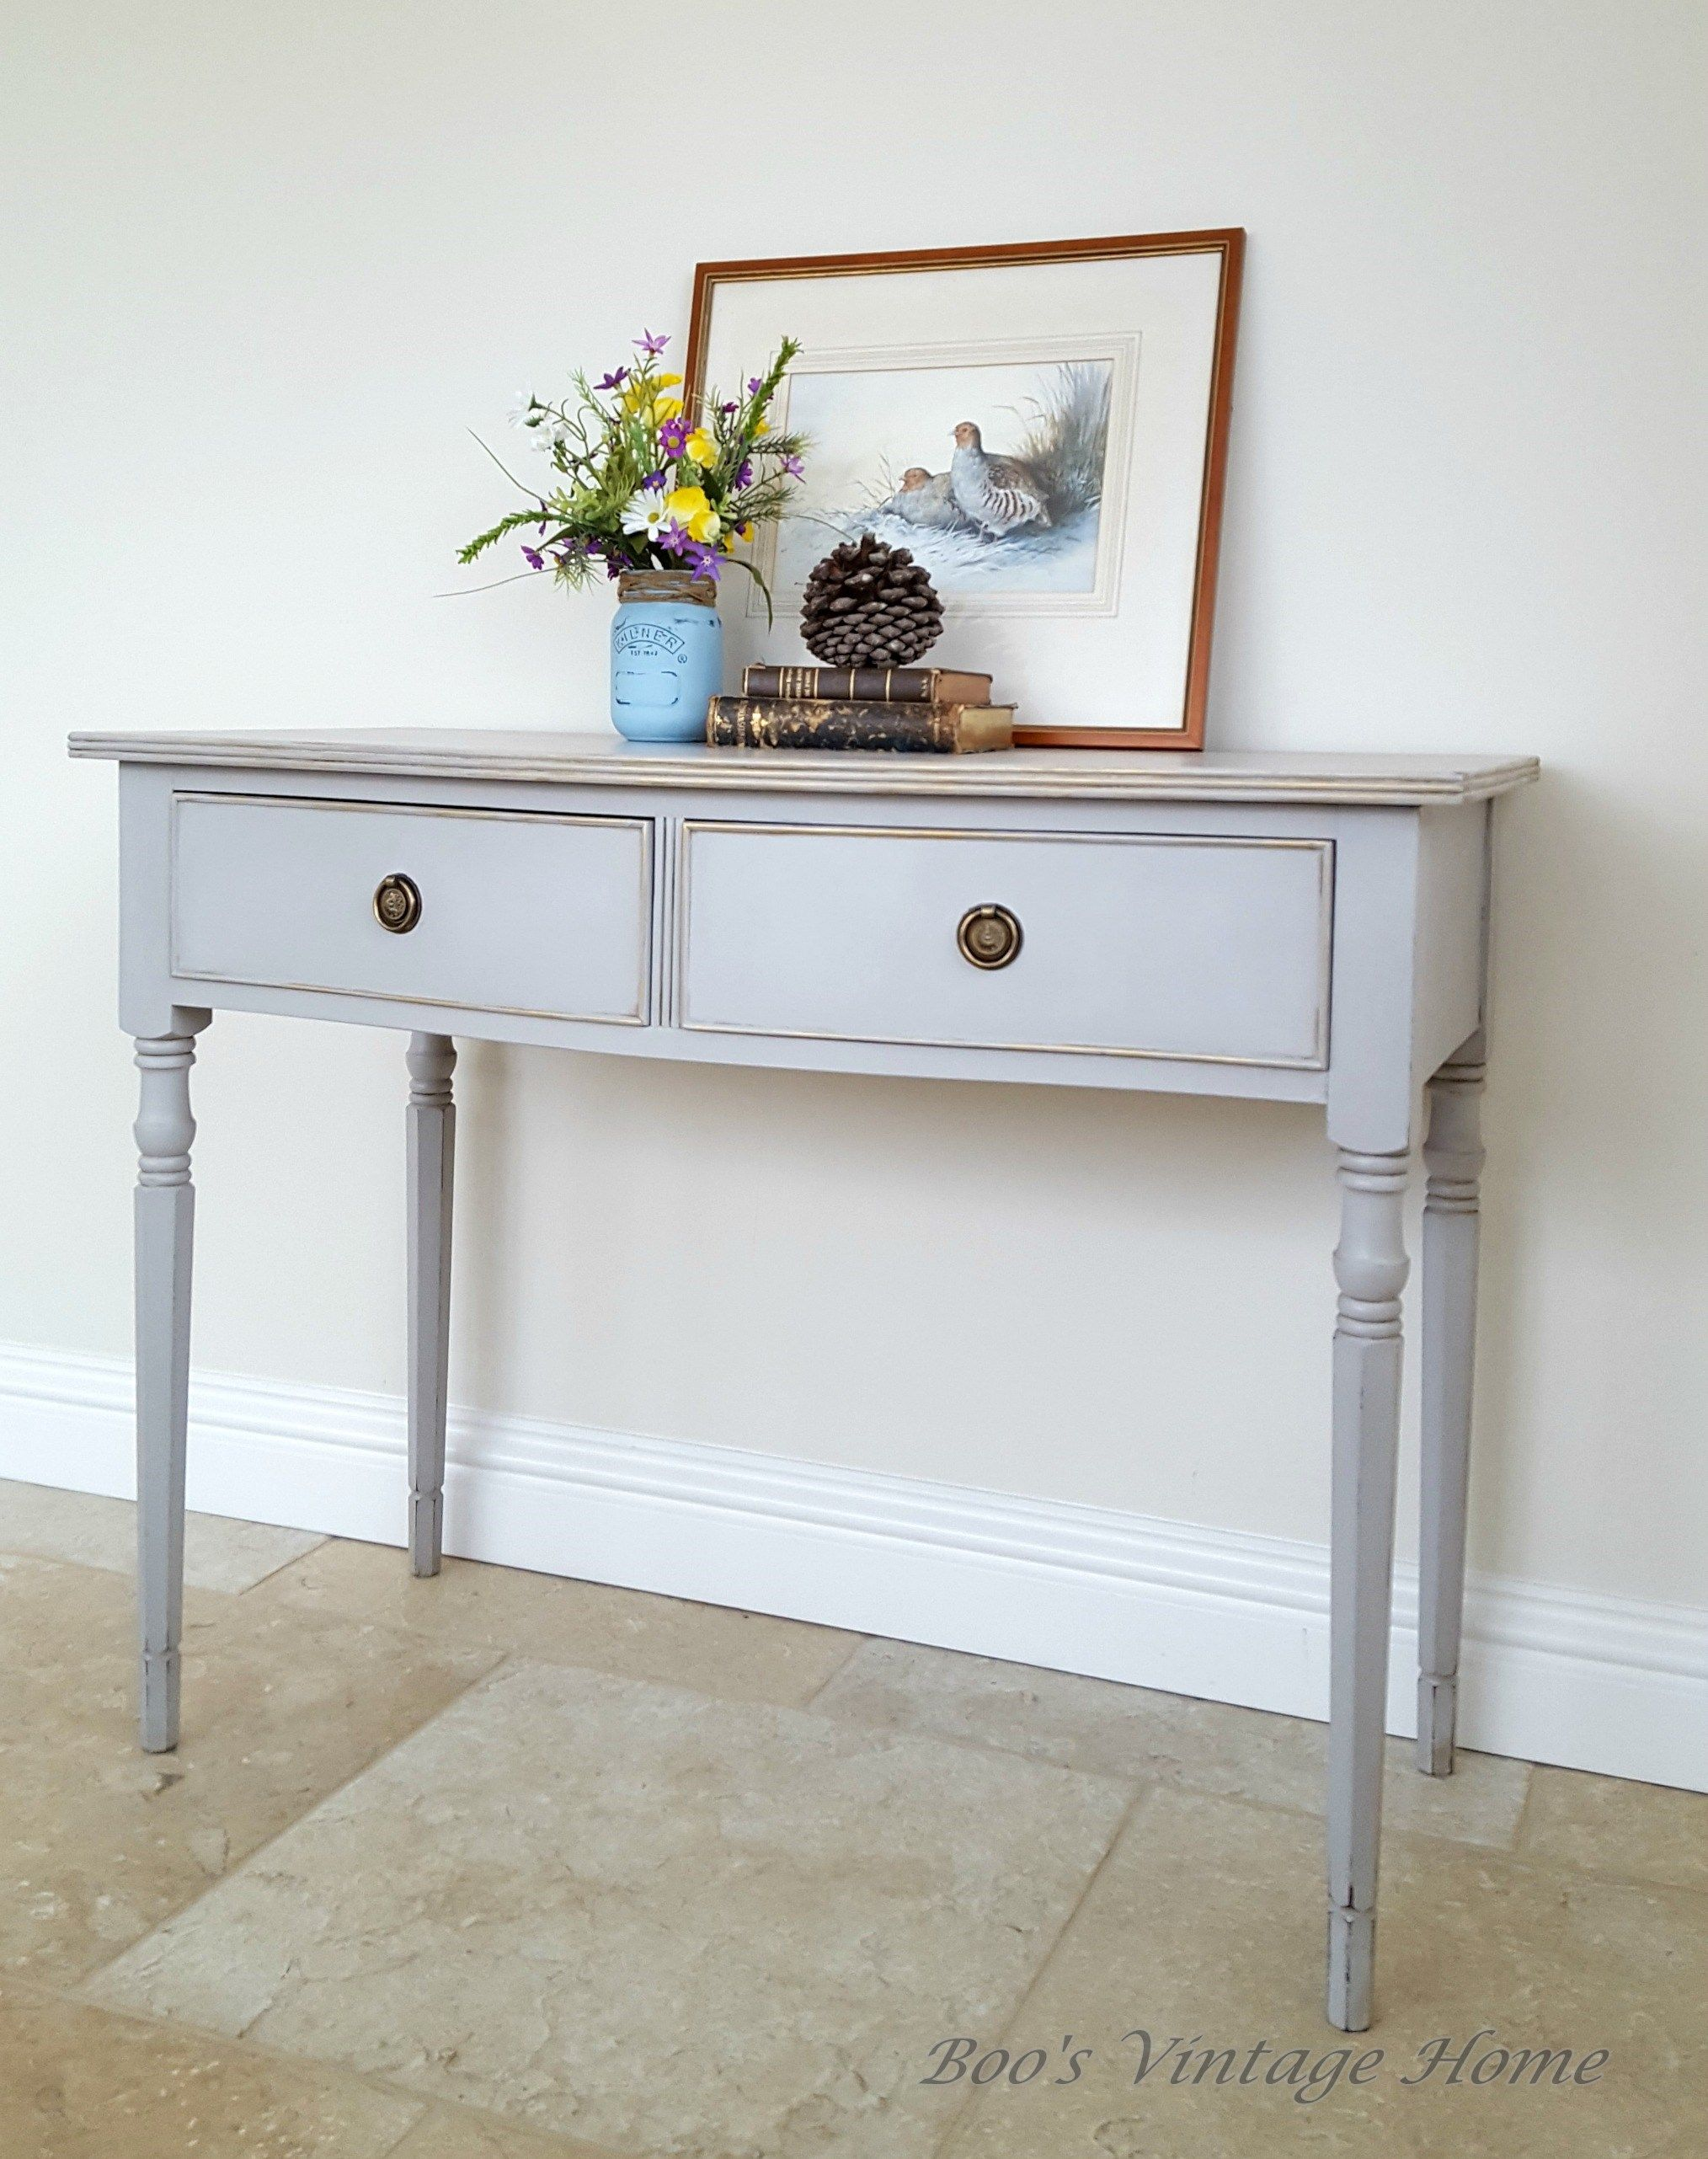 Elegant Little Console Table With 2 Drawers In Grey With Light Blue Drawer Slide Grey Painted Furniture Gray Console Table Vintage Furniture For Sale